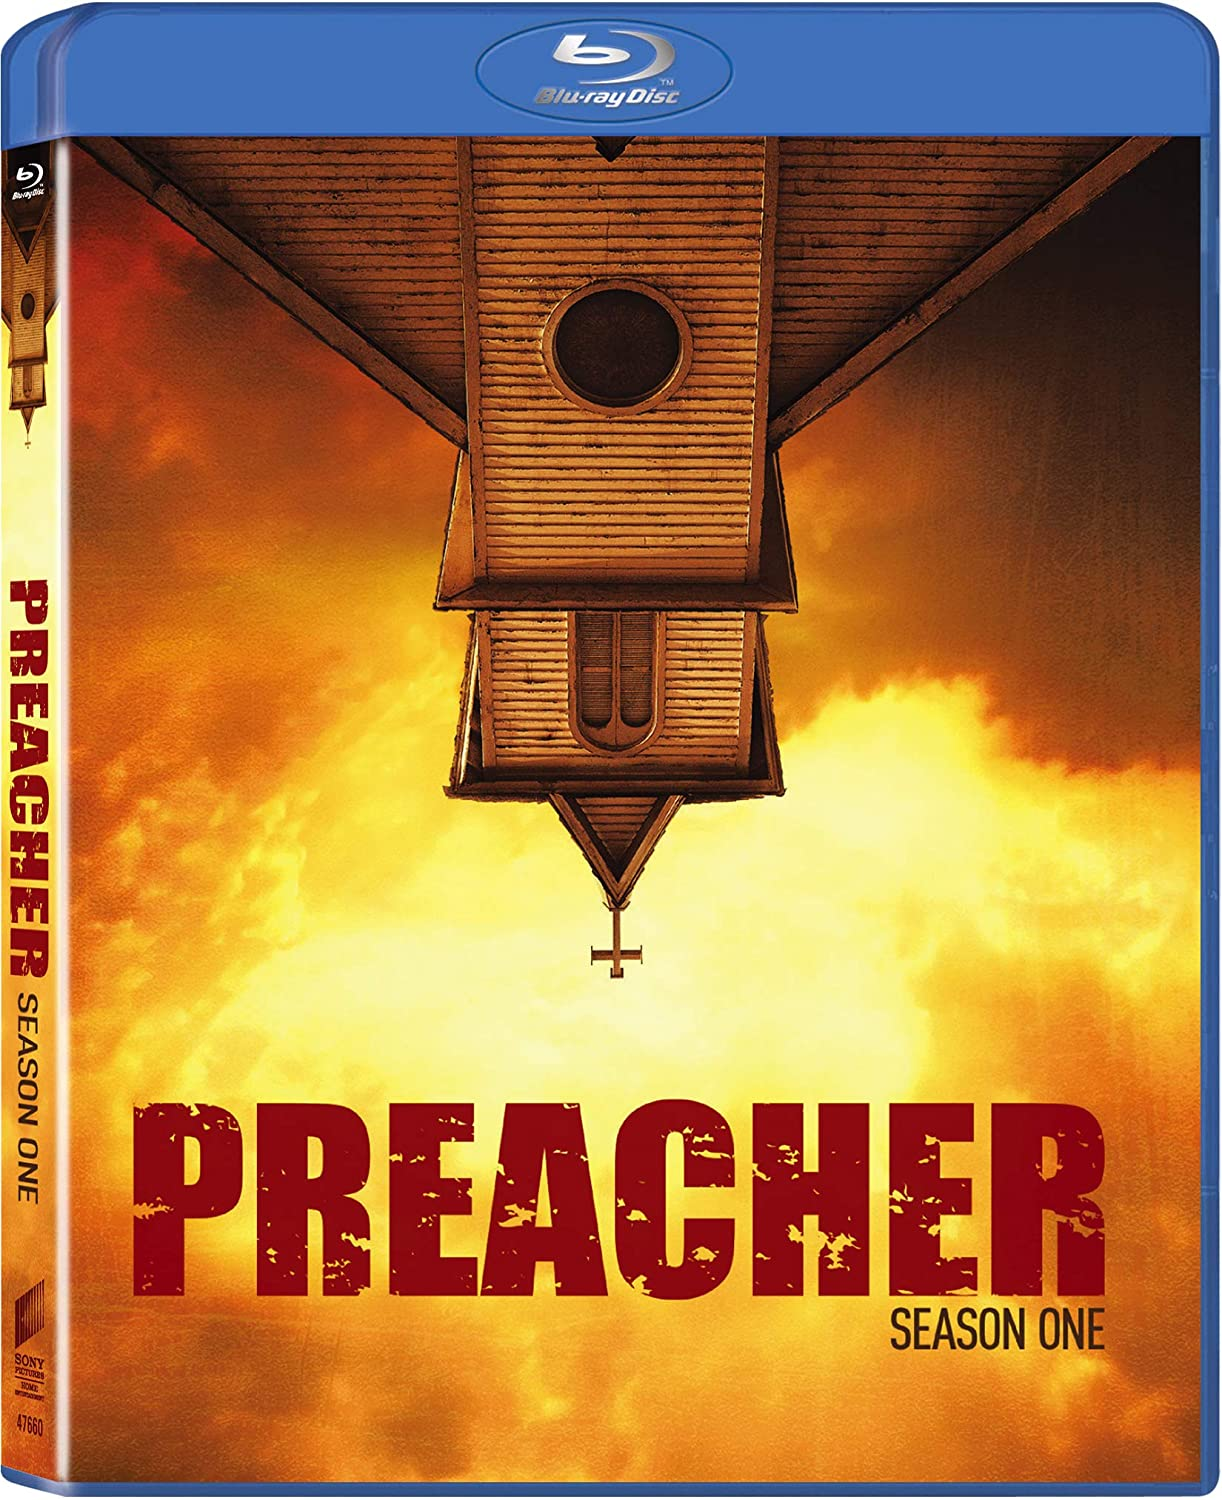 Preacher: Season One Blu-ray